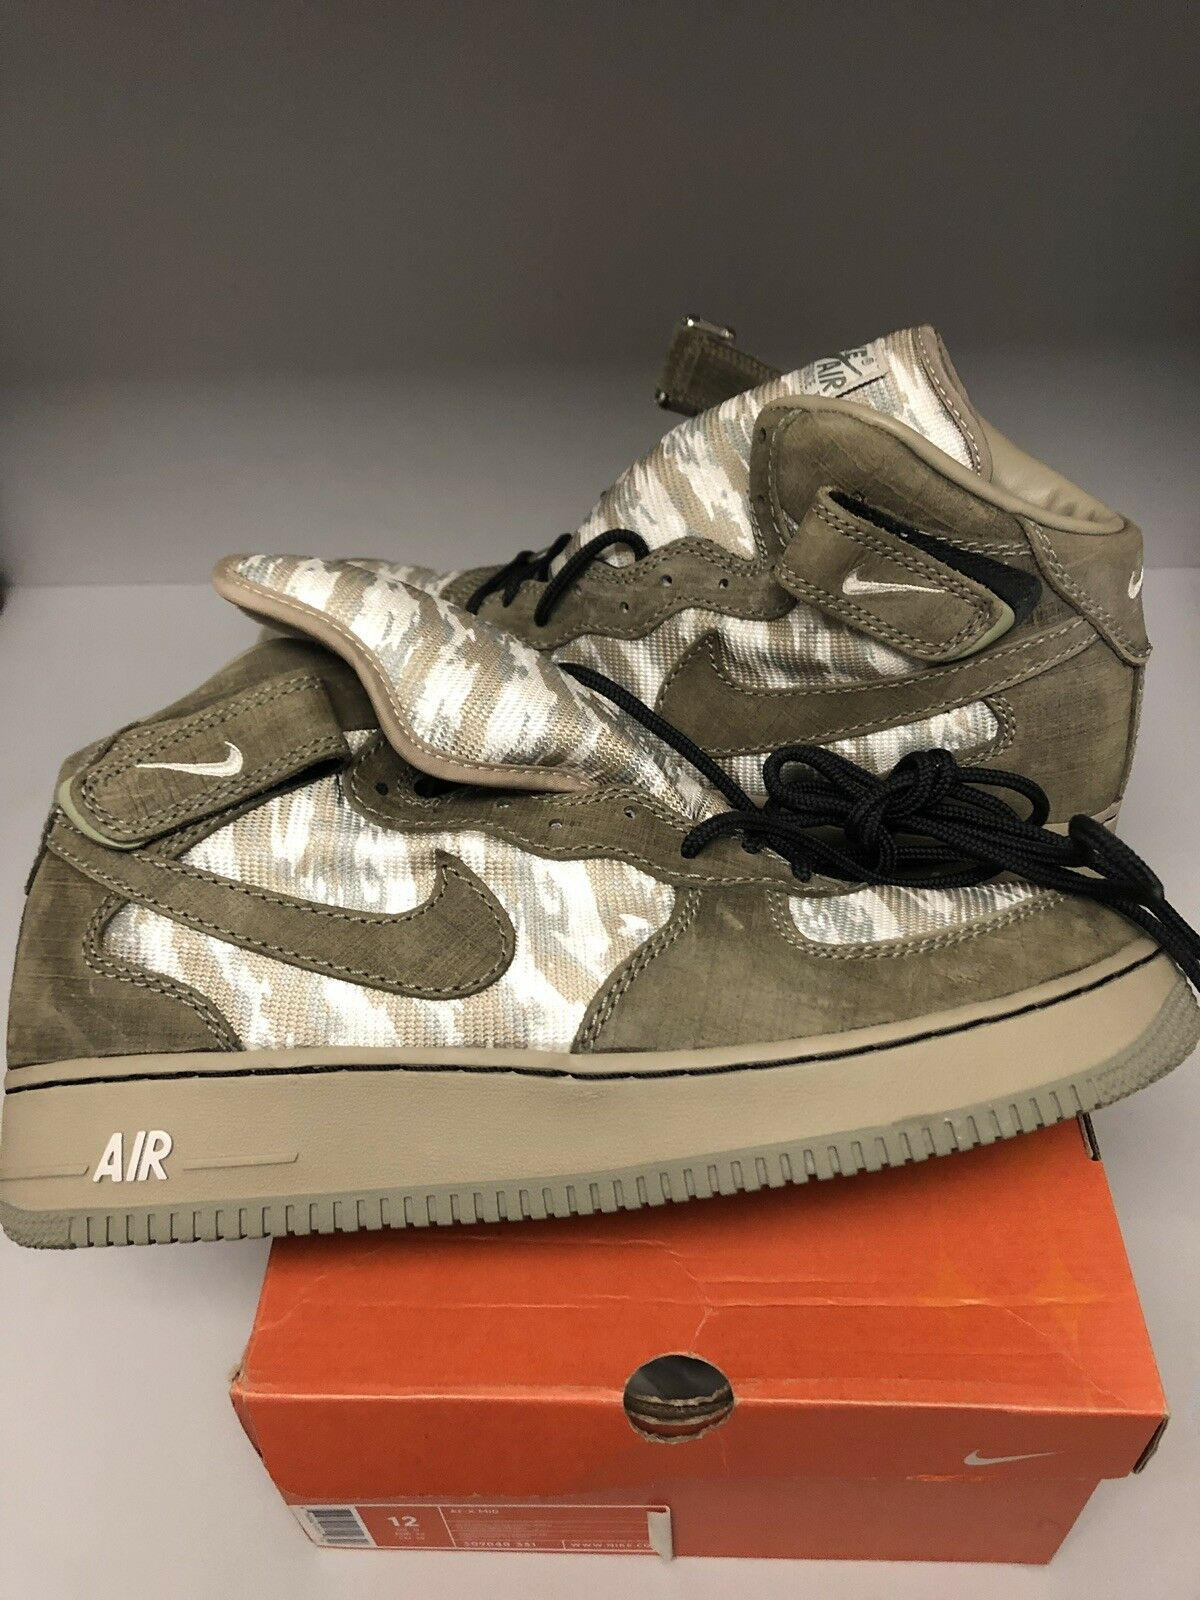 NIKE AIR FORCE 1 MID CLASSIC RECON NORT FUTURA STASH SIZE 12 OLIVE 2004 NEW